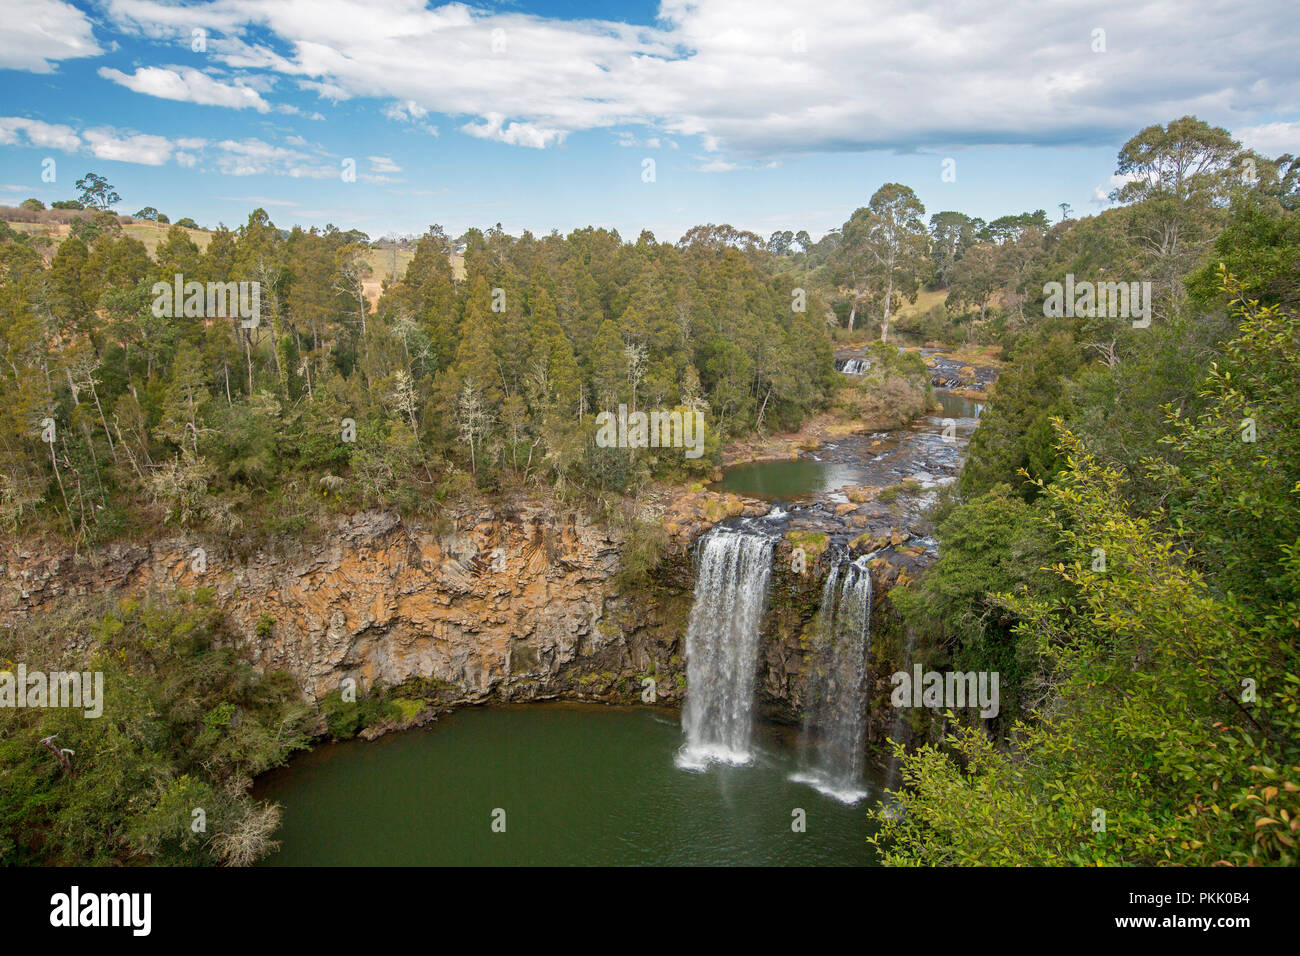 Spectacular Dangar Falls on Bellinger River pouring over rocky cliffs hemmed with forests and splashing into emerald pool near Dorrigo, NSW Australia - Stock Image